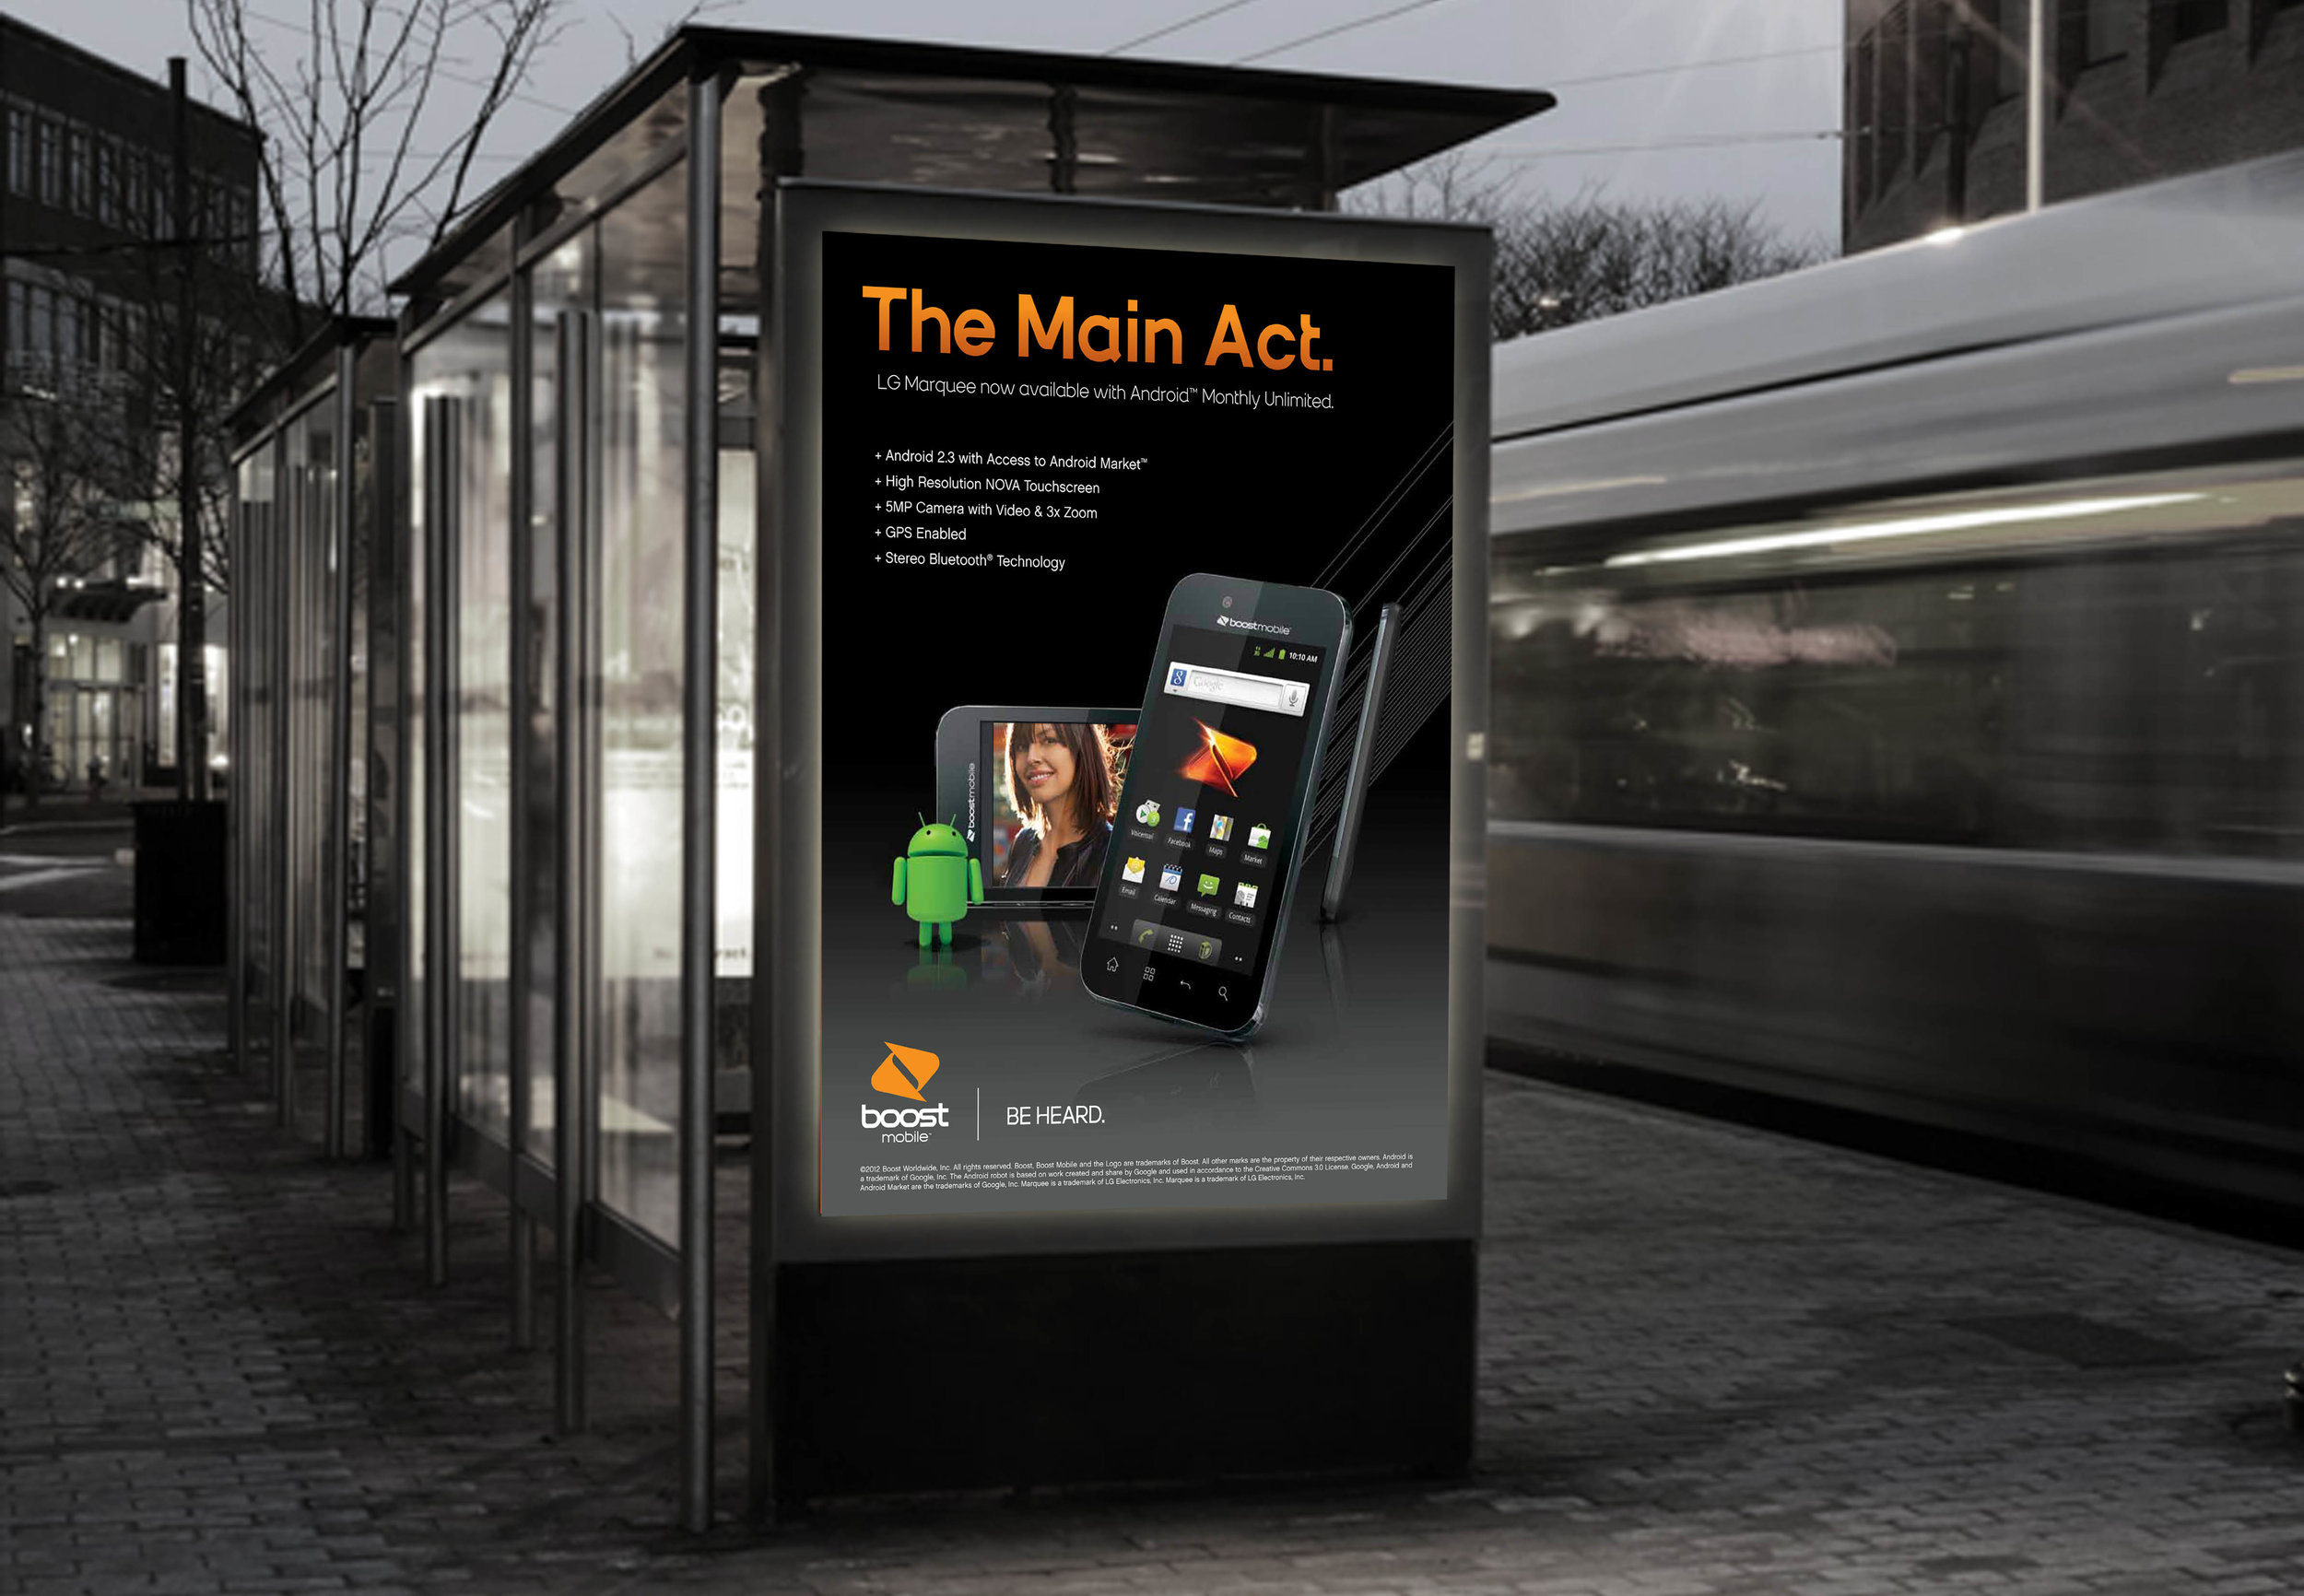 Boost_bus-shelters_002.jpg